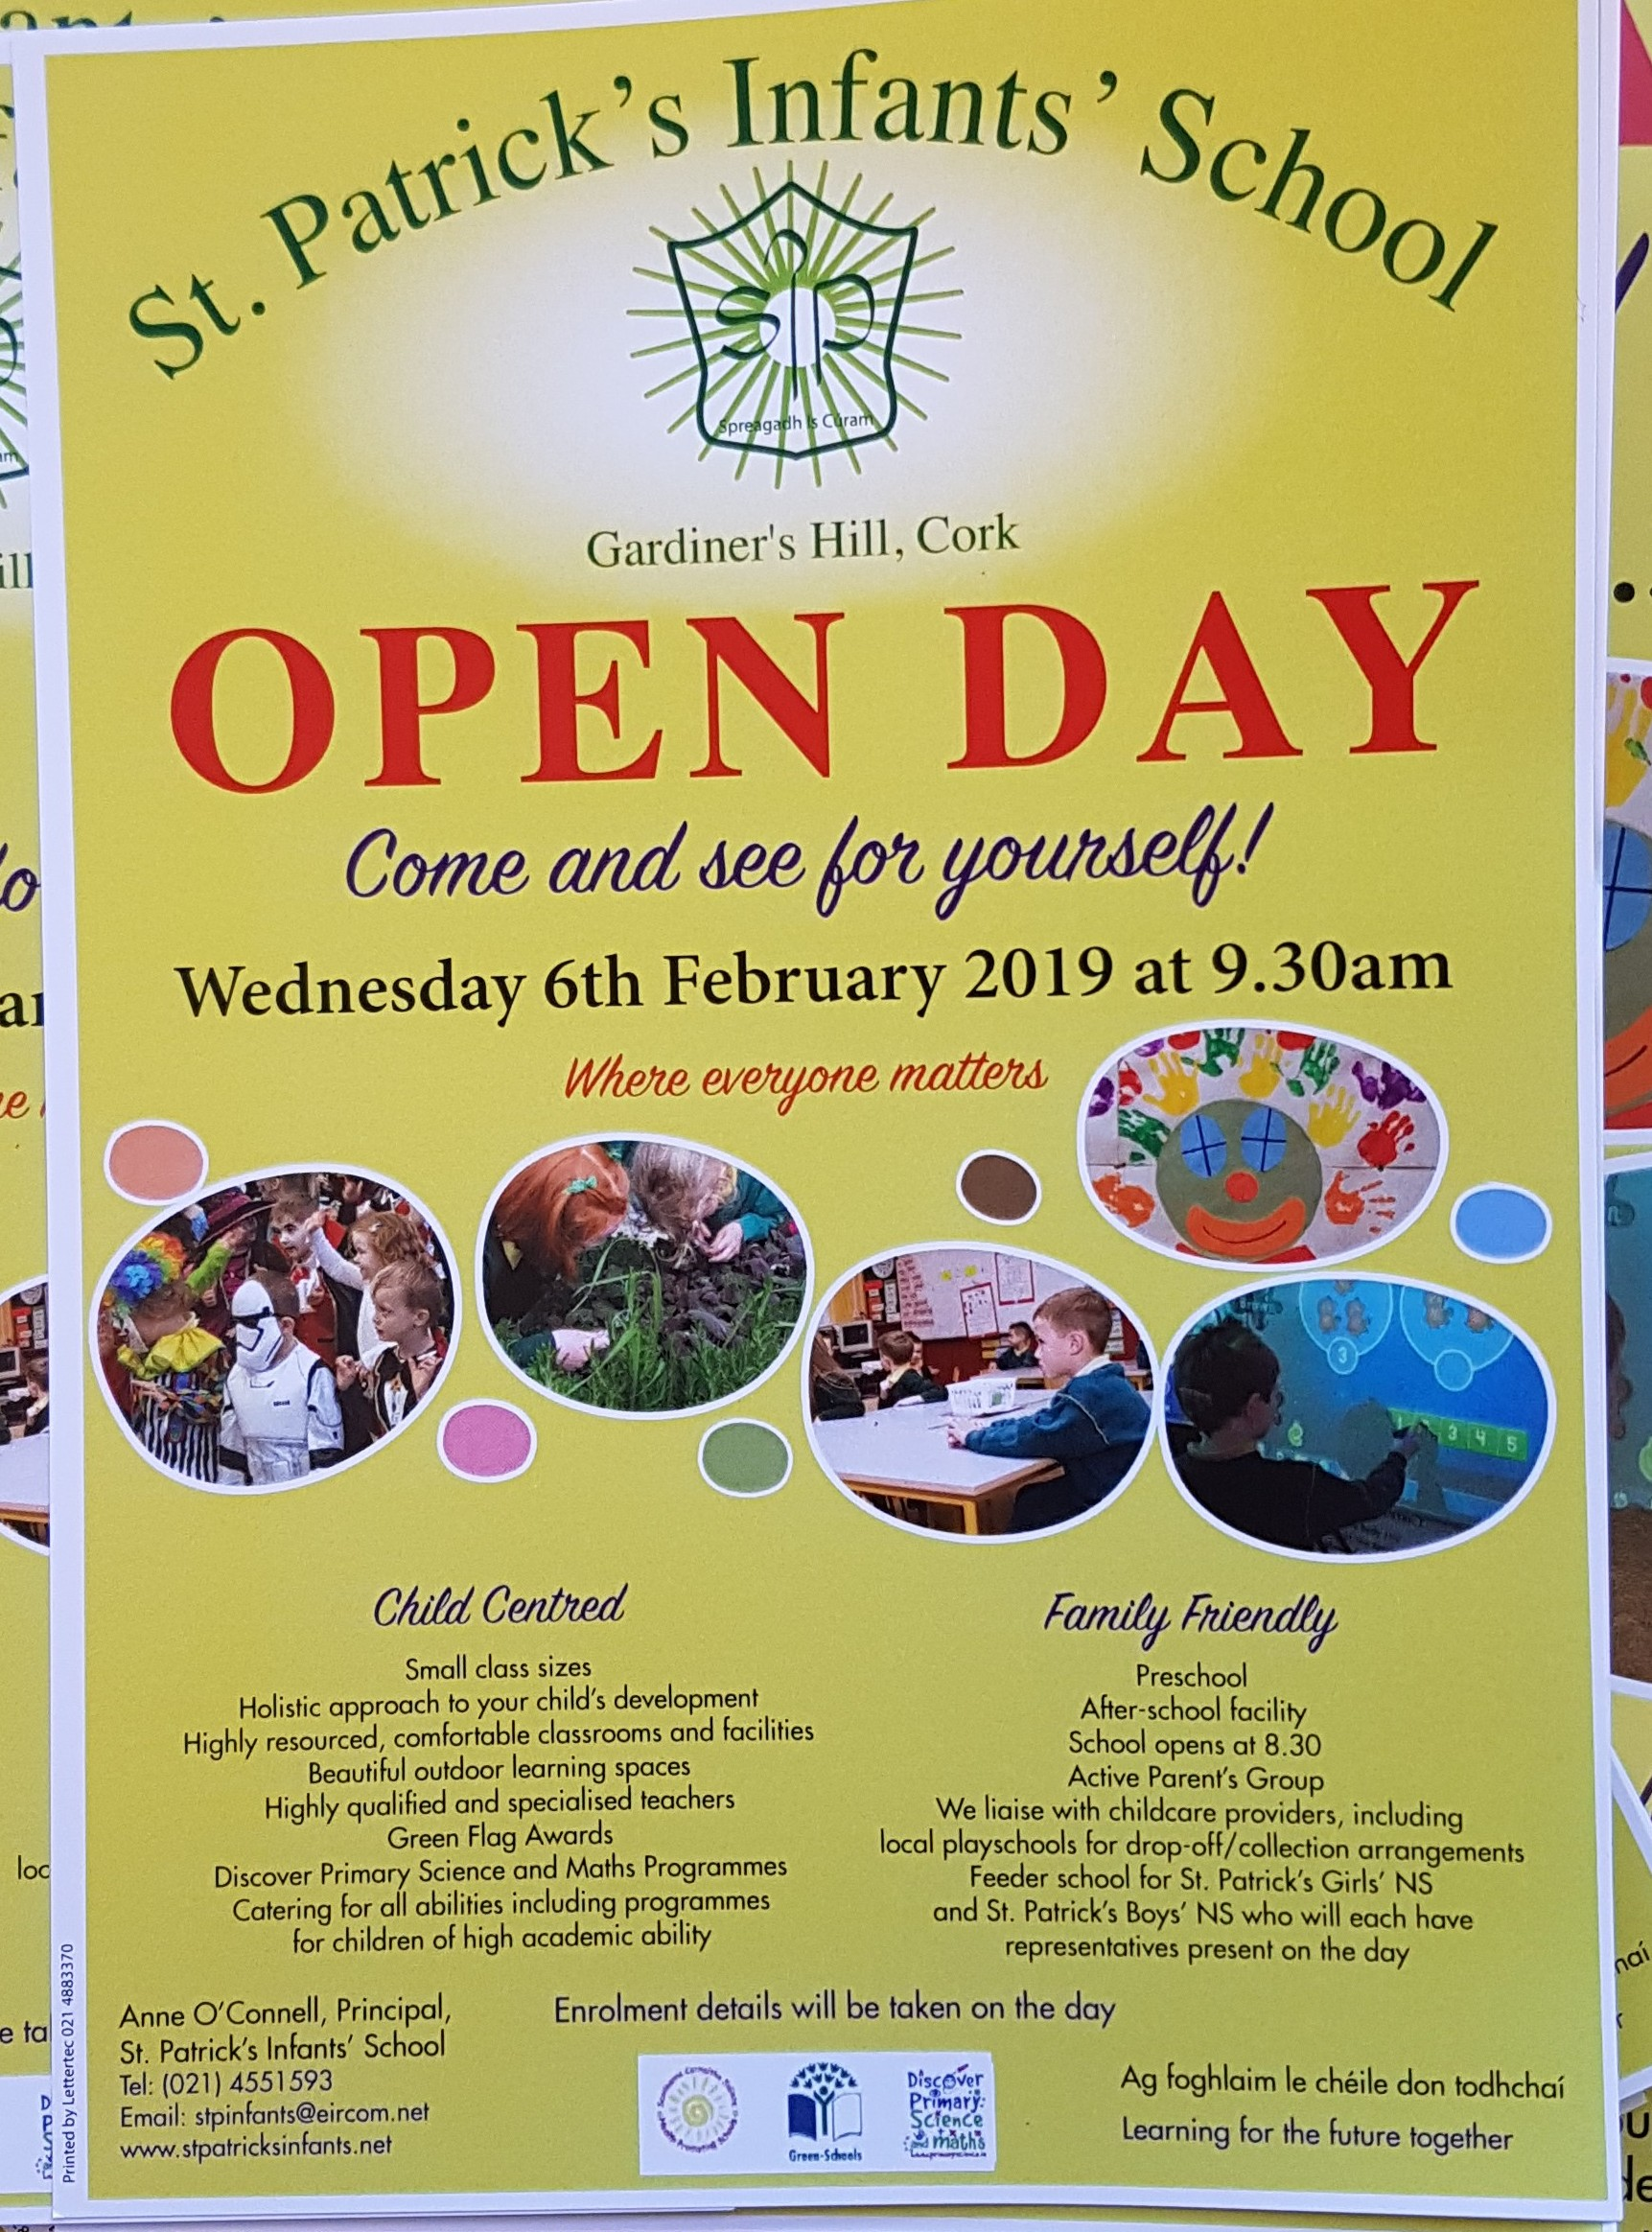 Open Day February 6th 2019